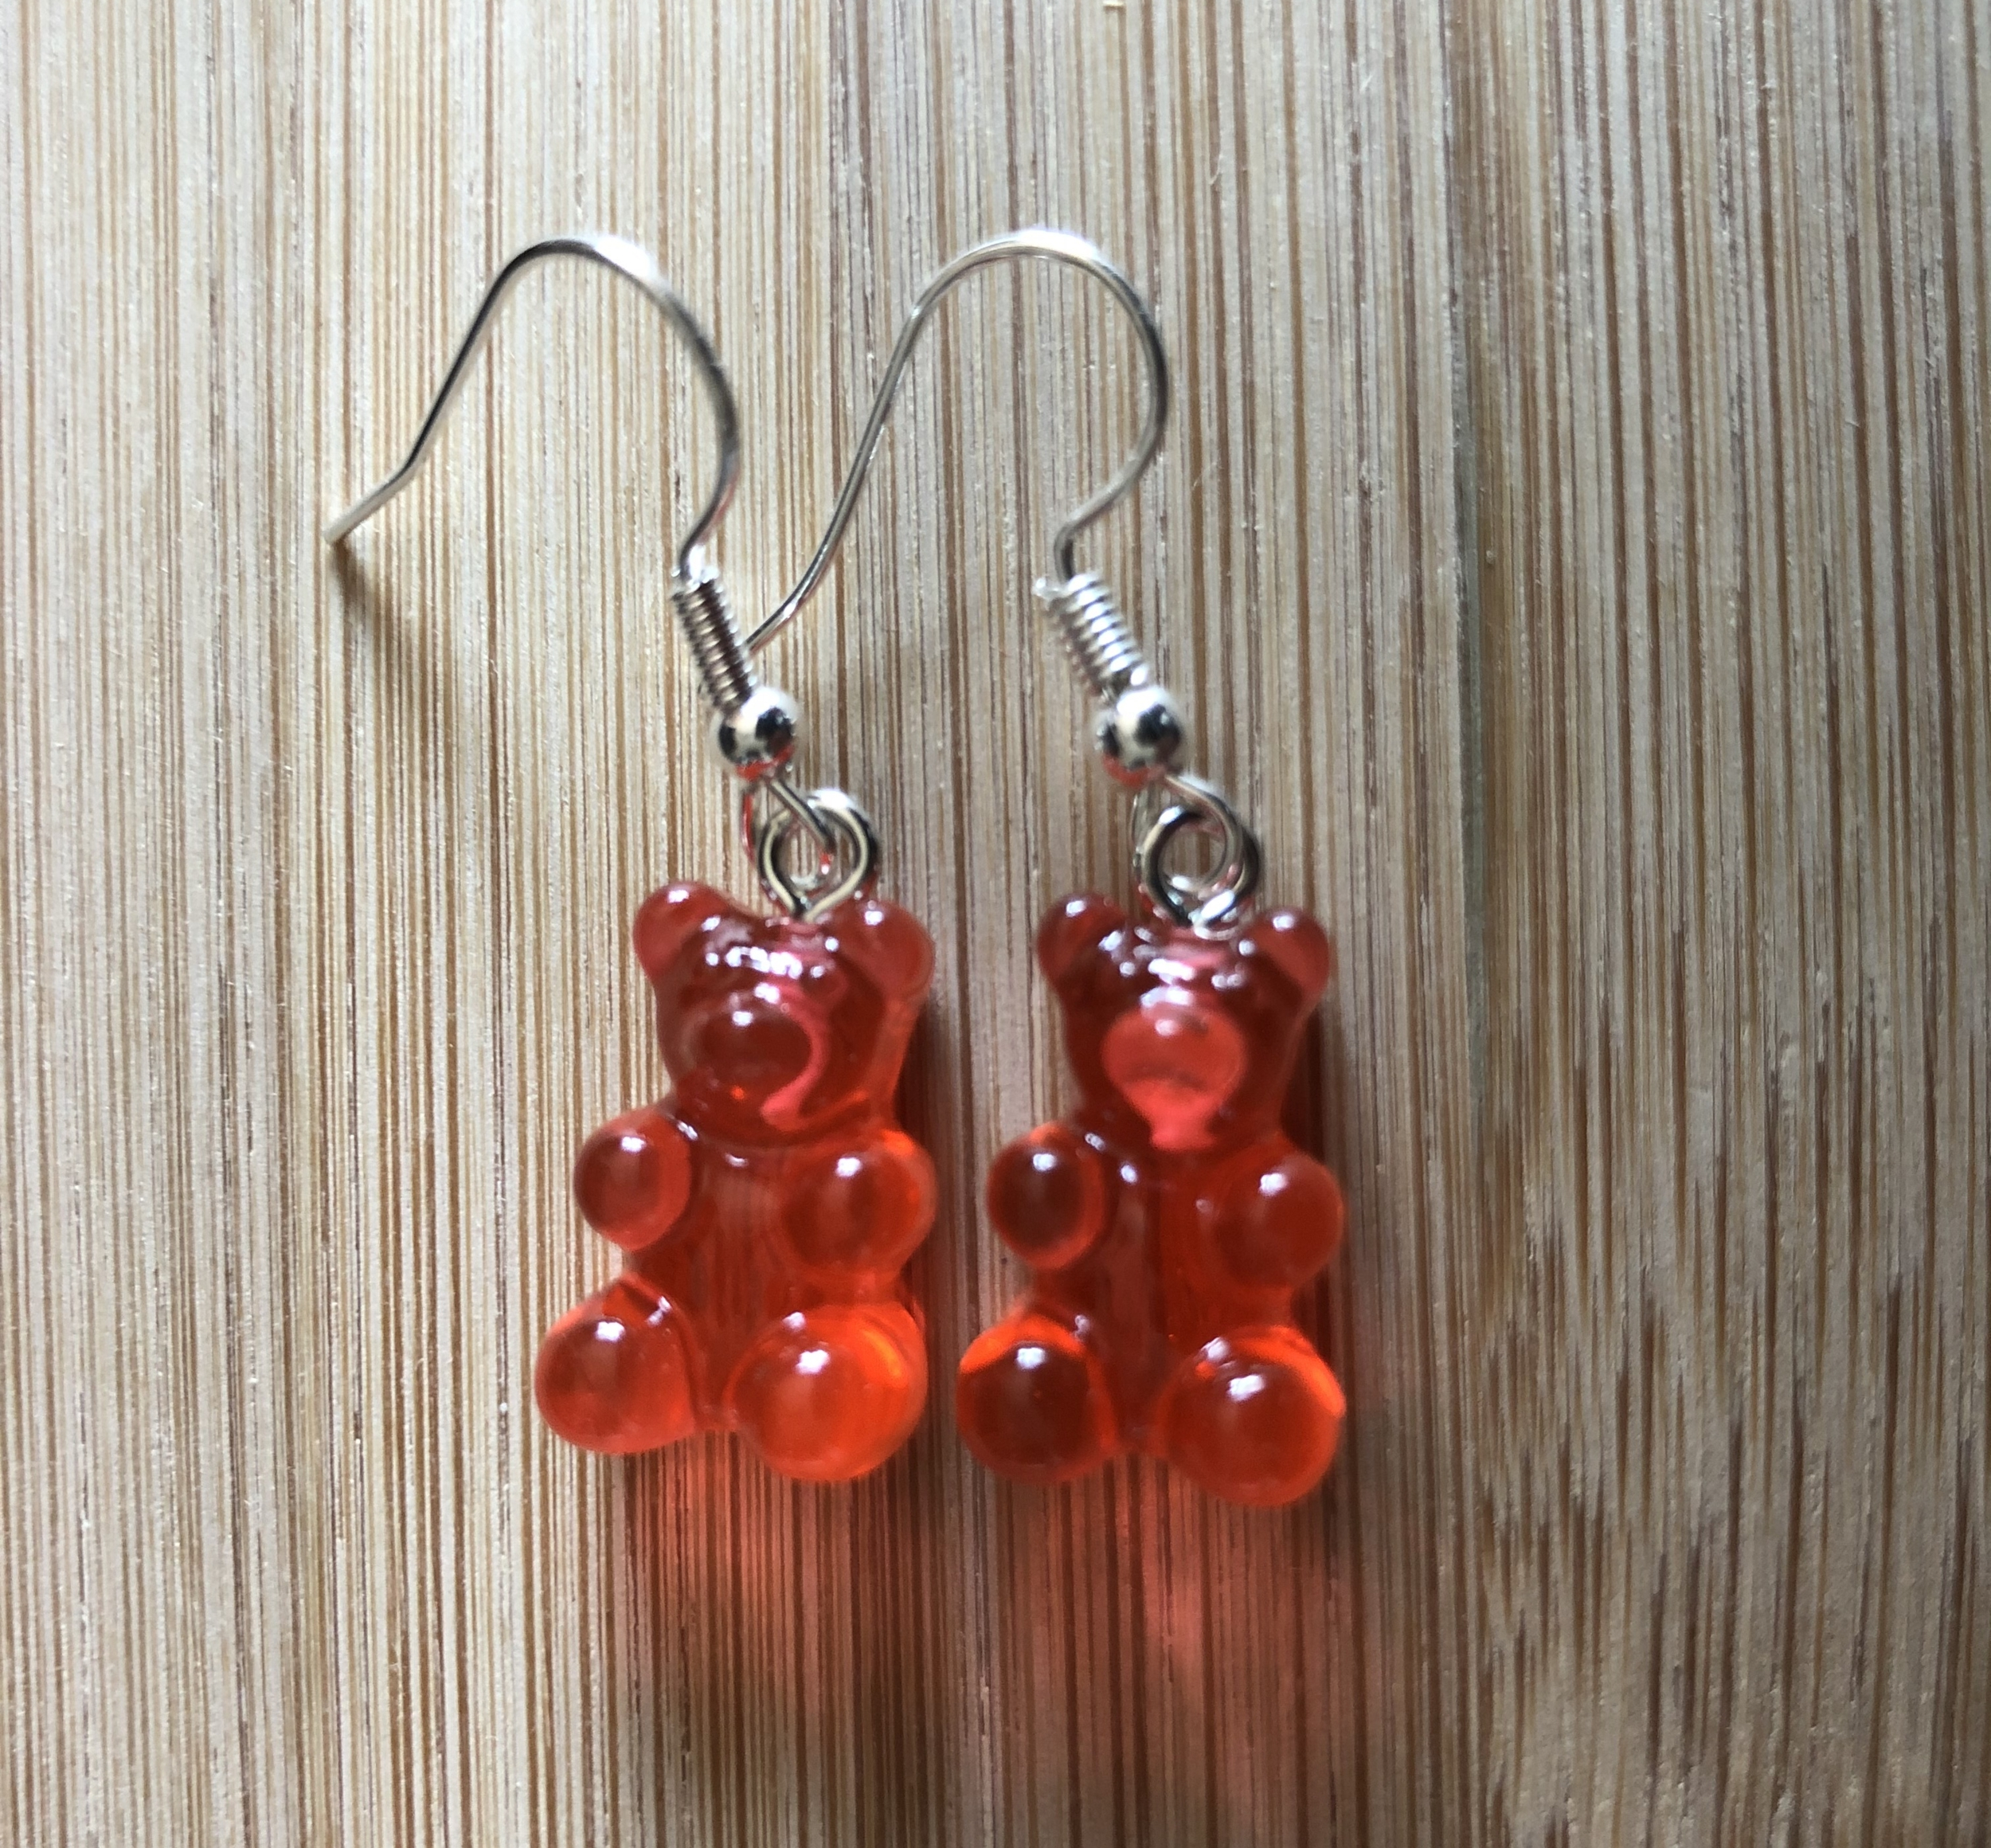 Boucles d\'oreilles ourson bonbon acidulé transparent rouge - Angel shop